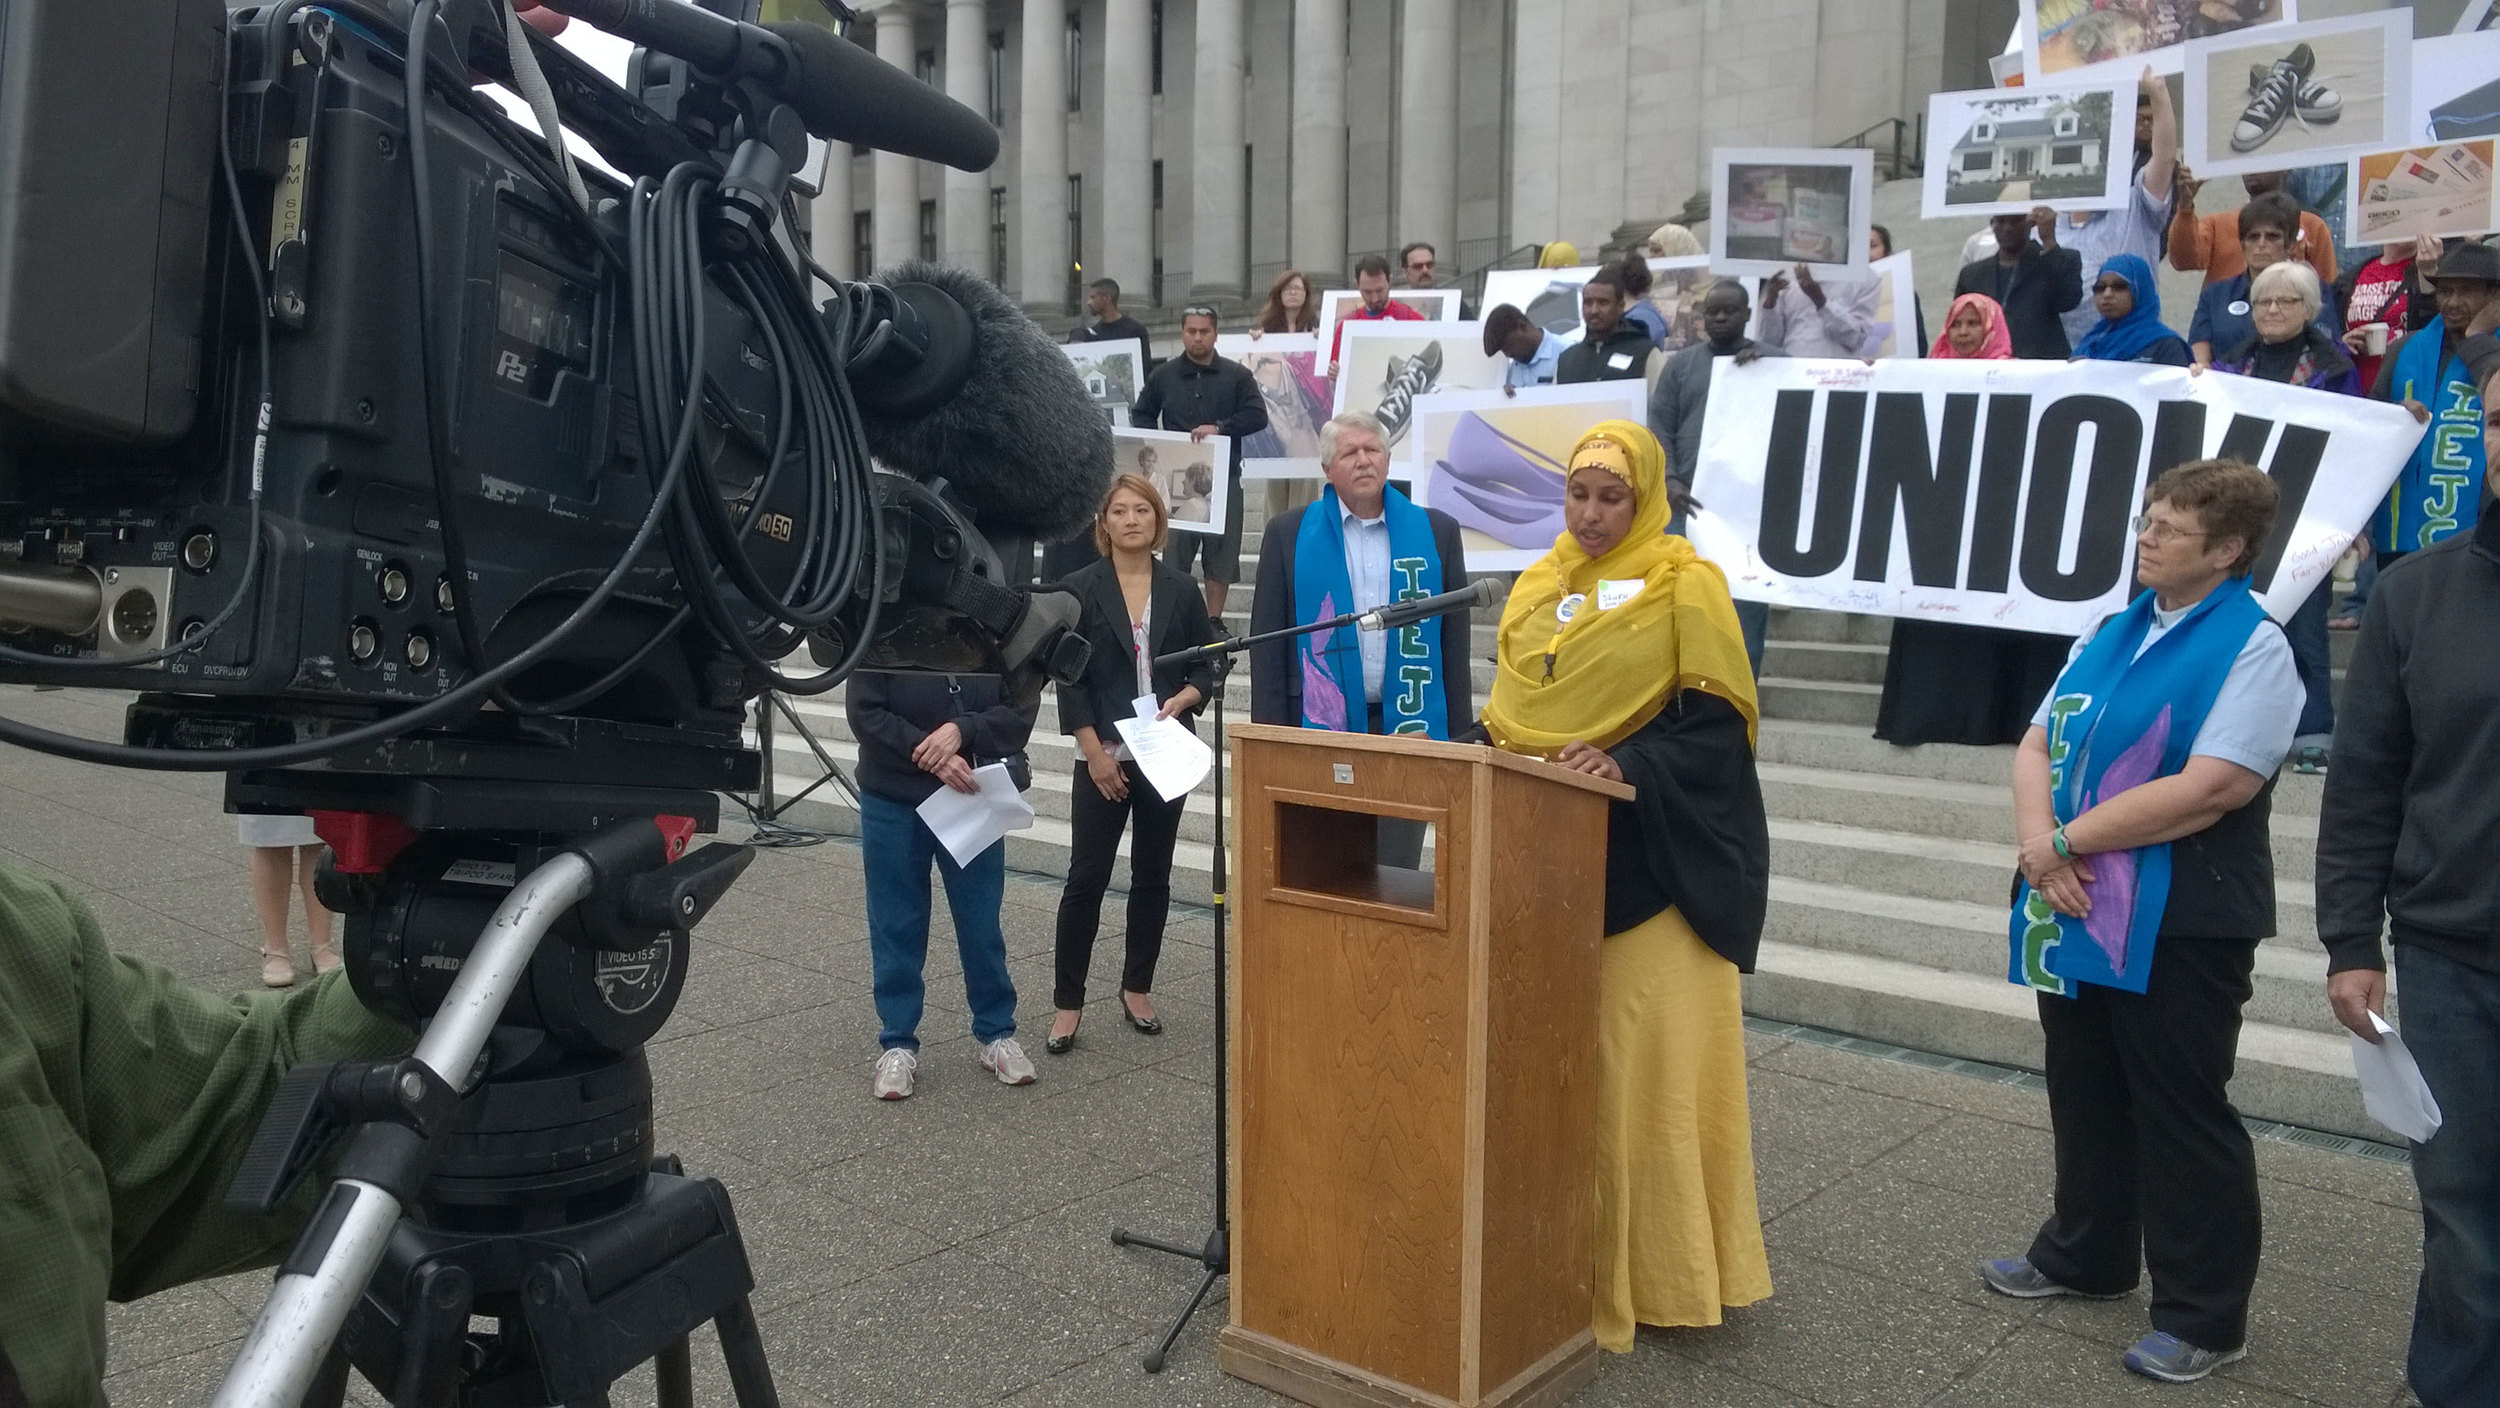 UFCW 21 member Shukri Hussien spoke on the steps of the Olympic court on June 26